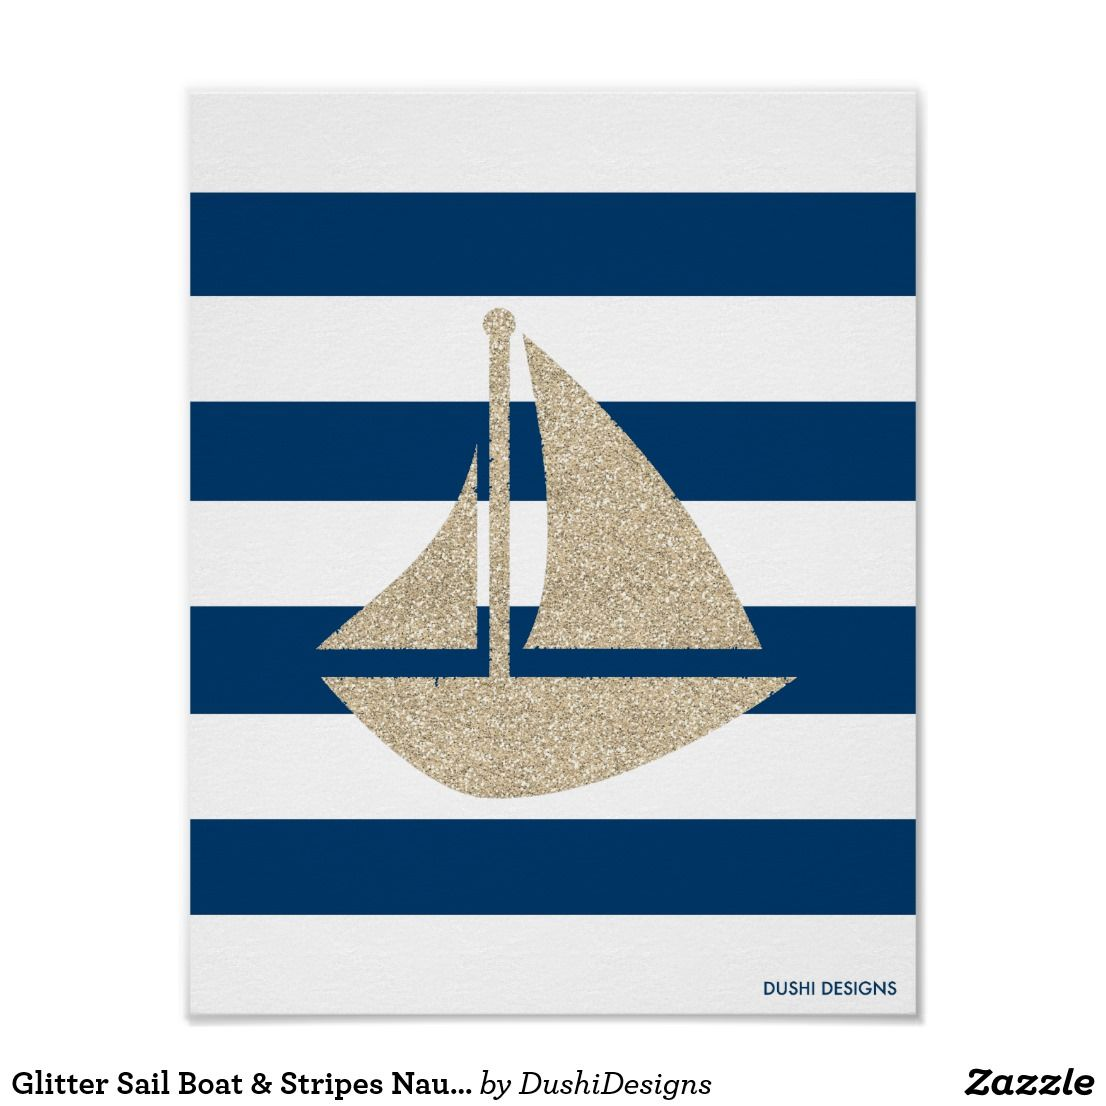 Glitter Sail Boat Stripes Nautical Poster For Sale This Nautical Inspired Poster Print Features A Gold Champagne Nautical Posters Poster Prints Sale Poster